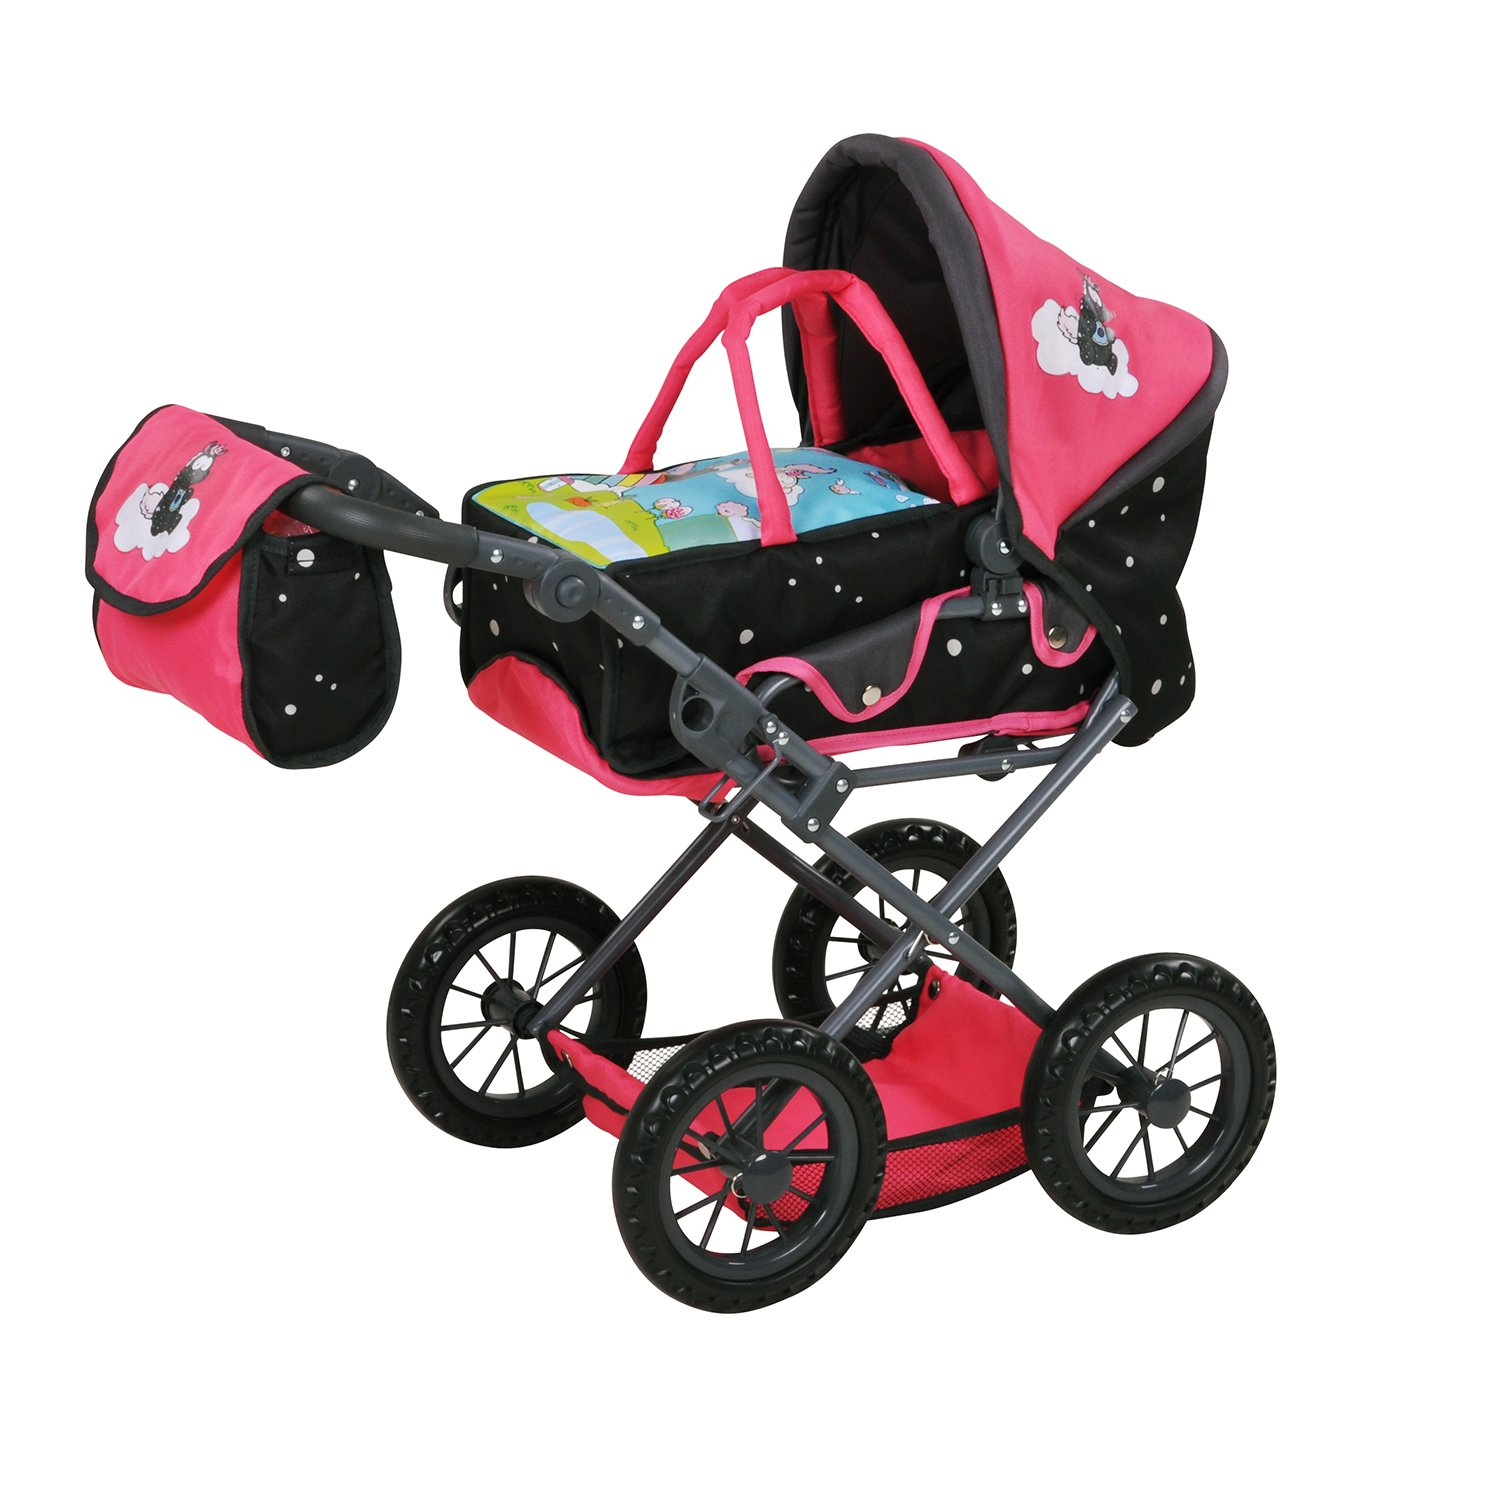 Knorr Toys 80211 Knoortoys Theodor Carbon - Doll Carriage Ruby, Multicoloured   B07DLMZTDP